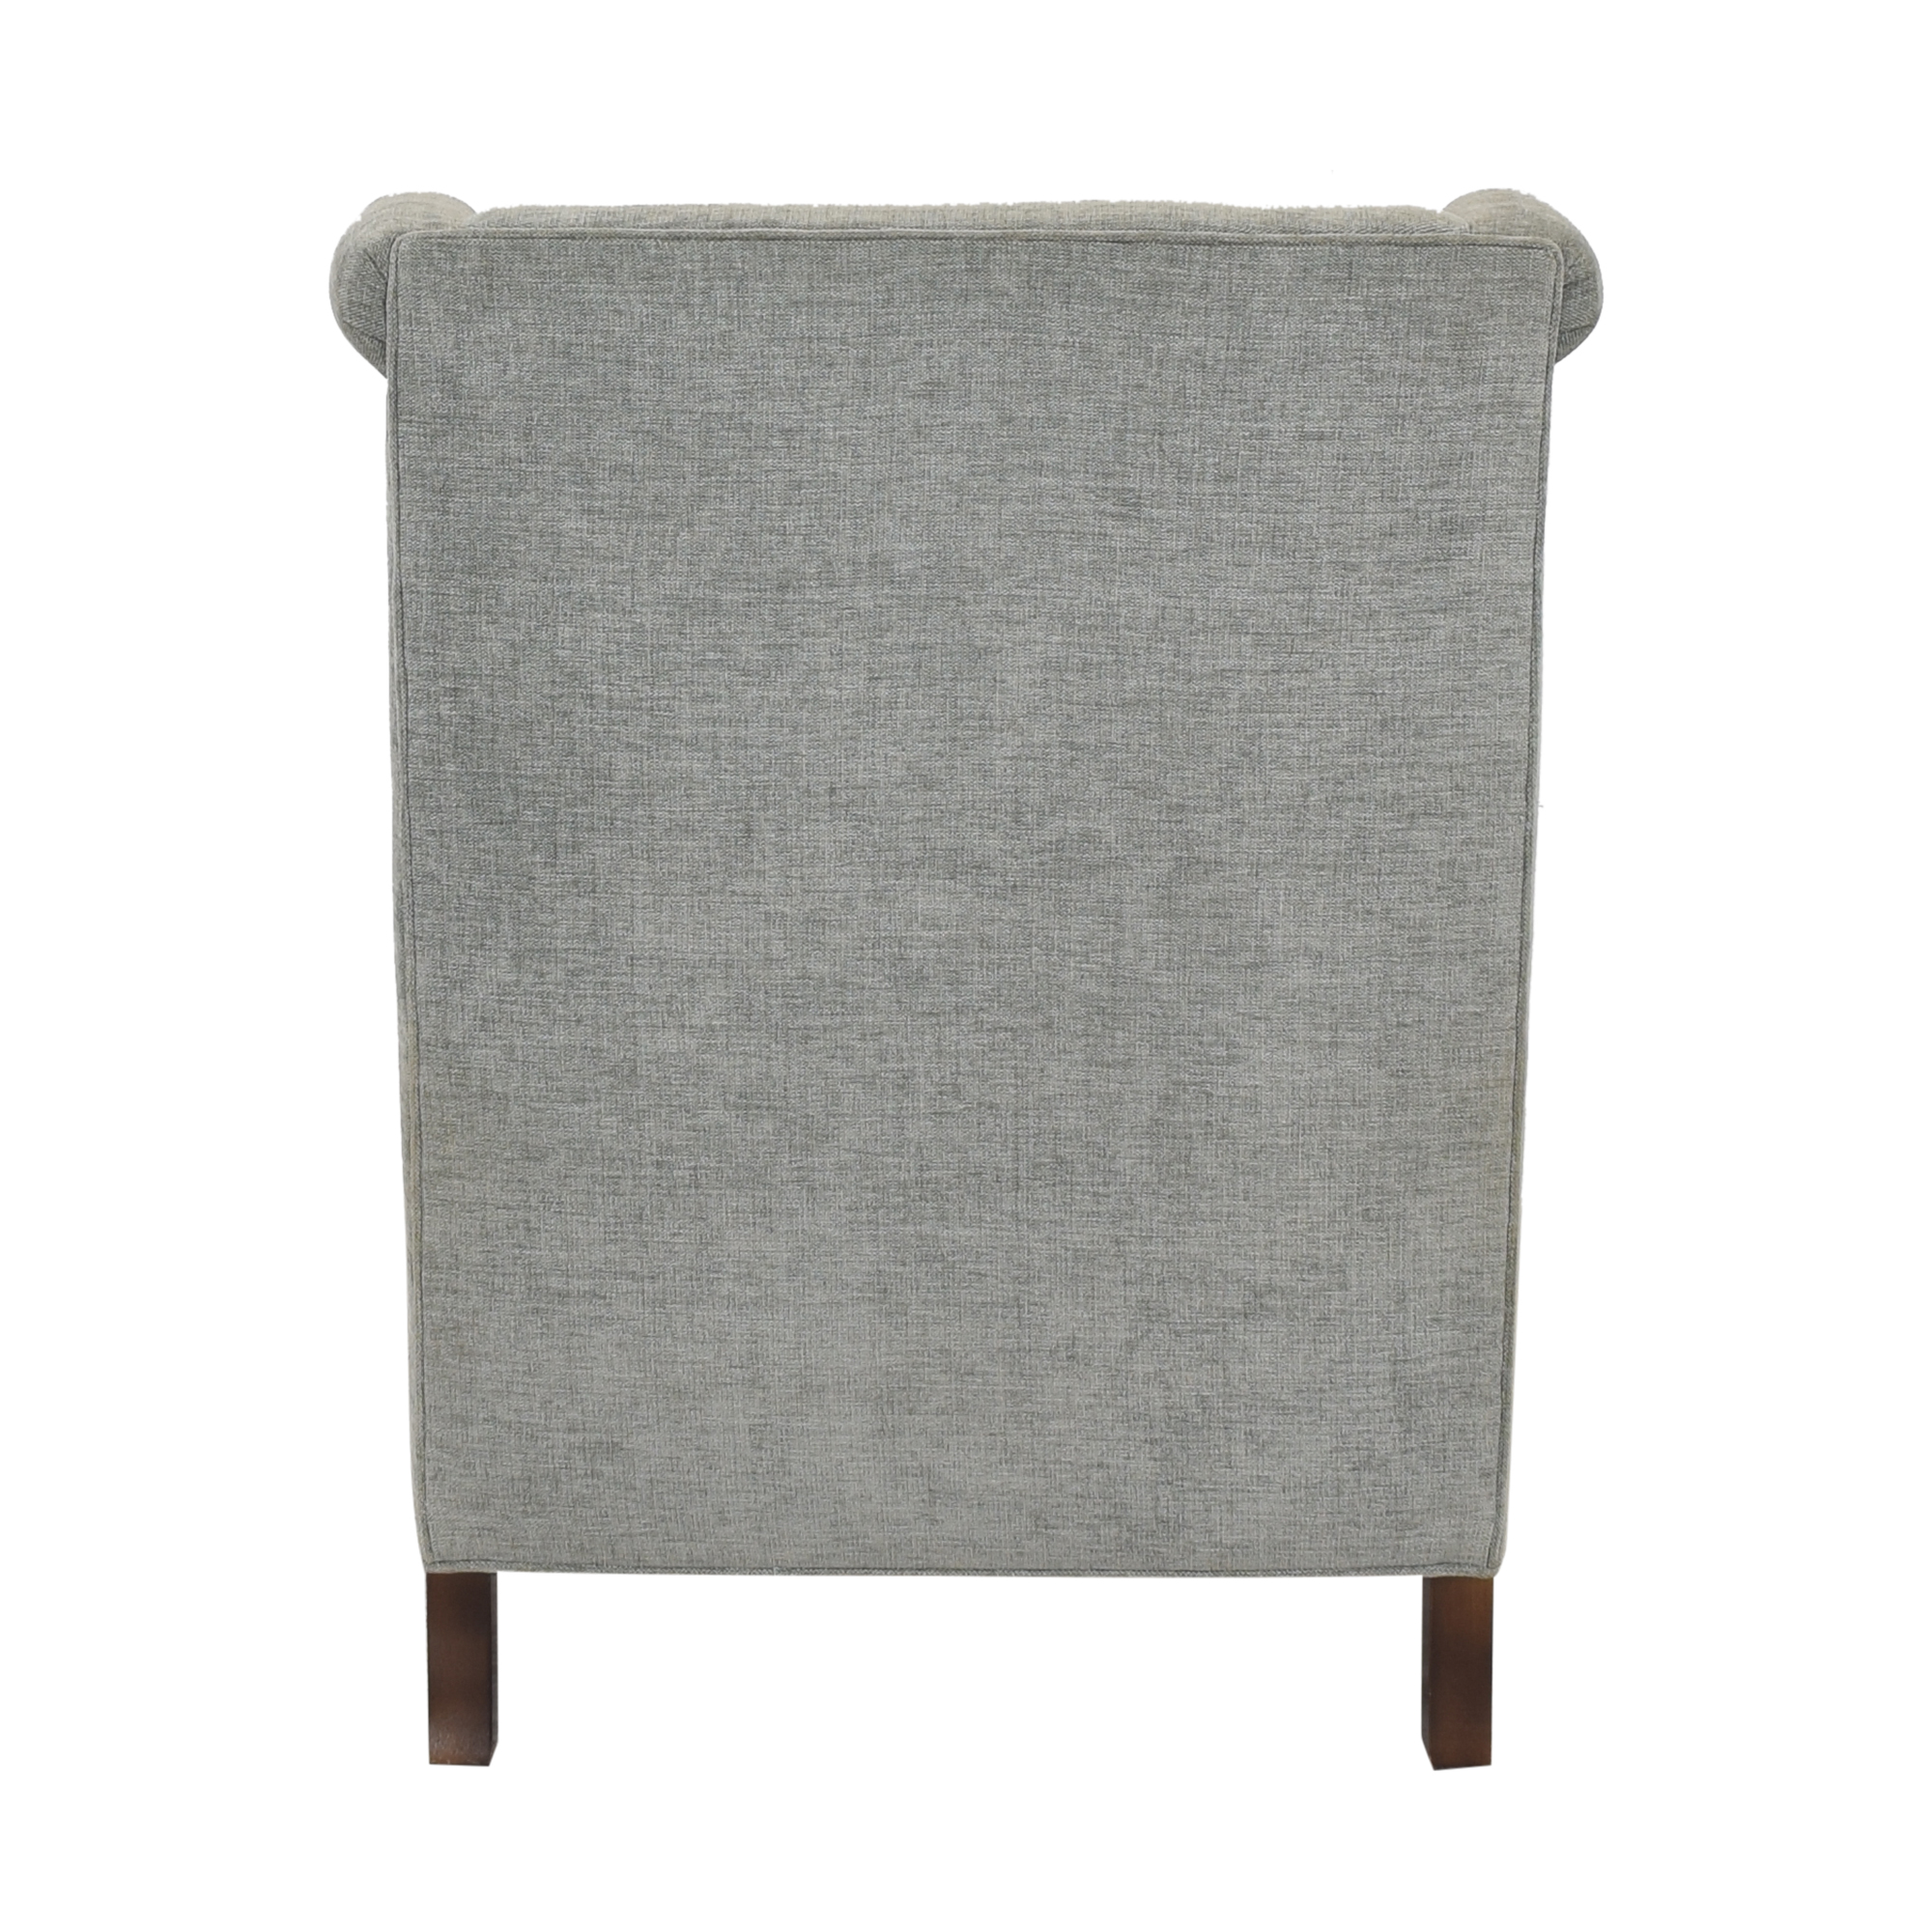 Custom Upholstered Accent Chair used